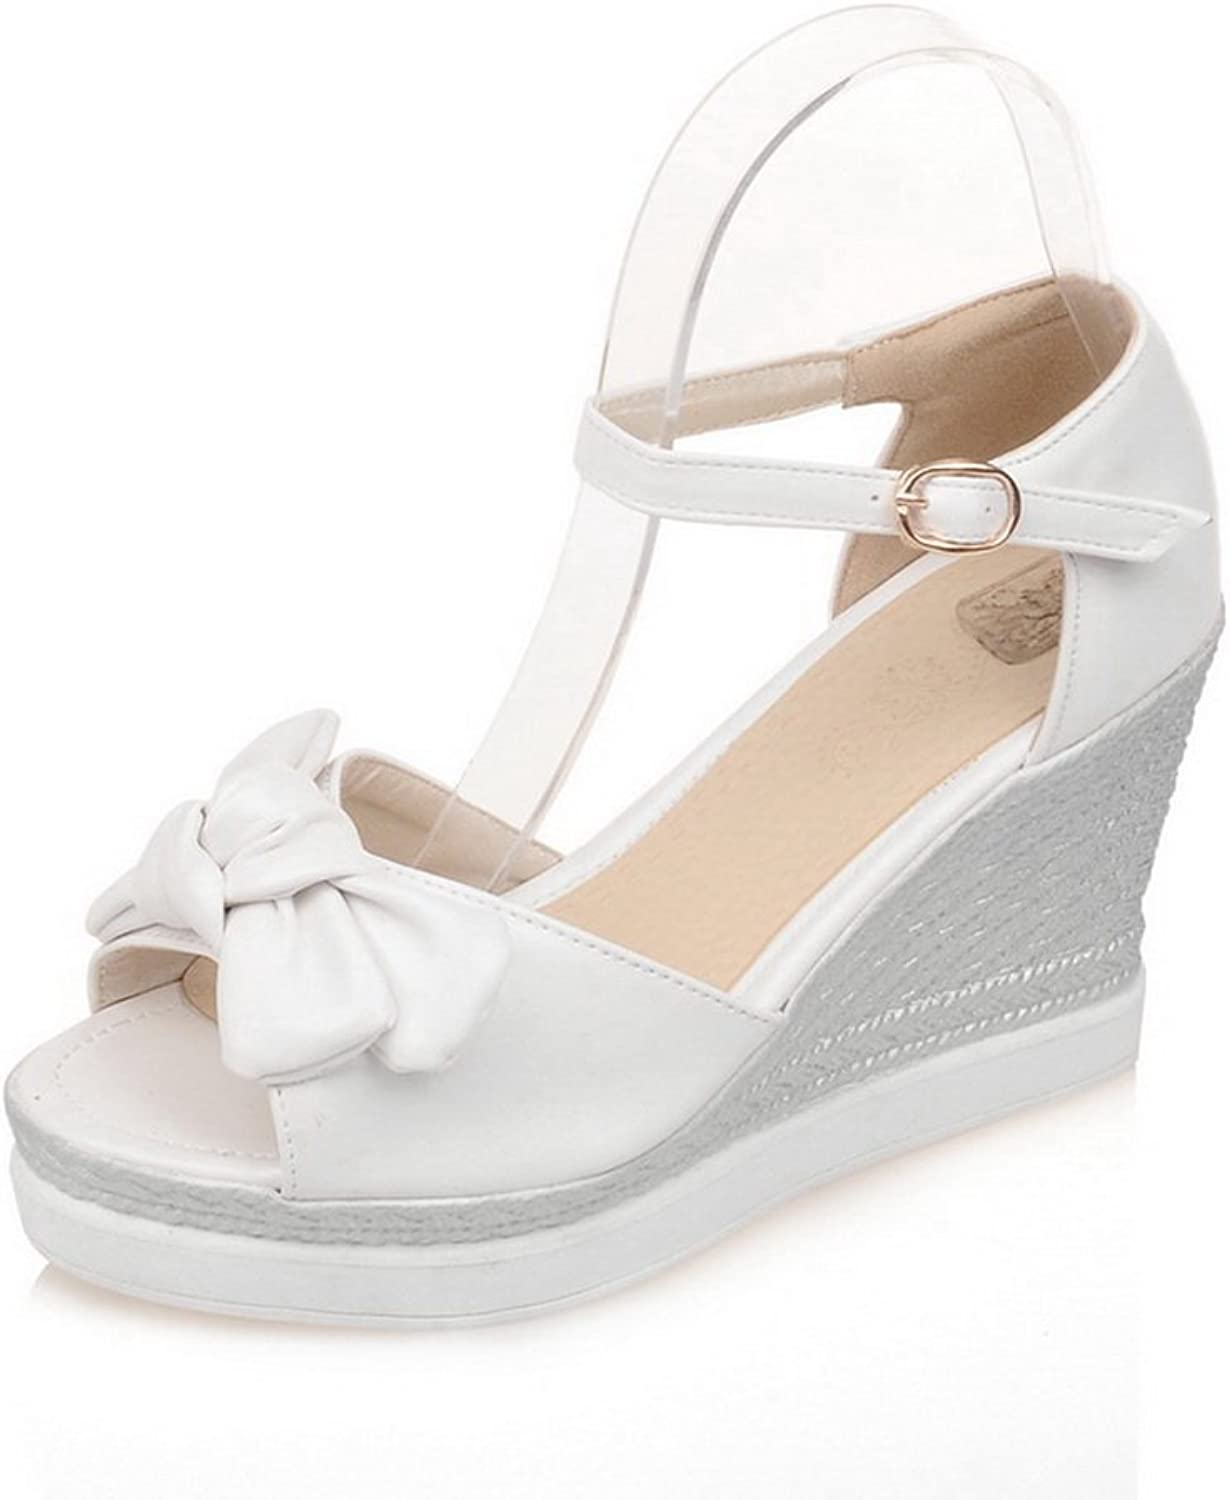 1TO9 Womens Bows Wedges Buckle Urethane Platforms Sandals MJS02579